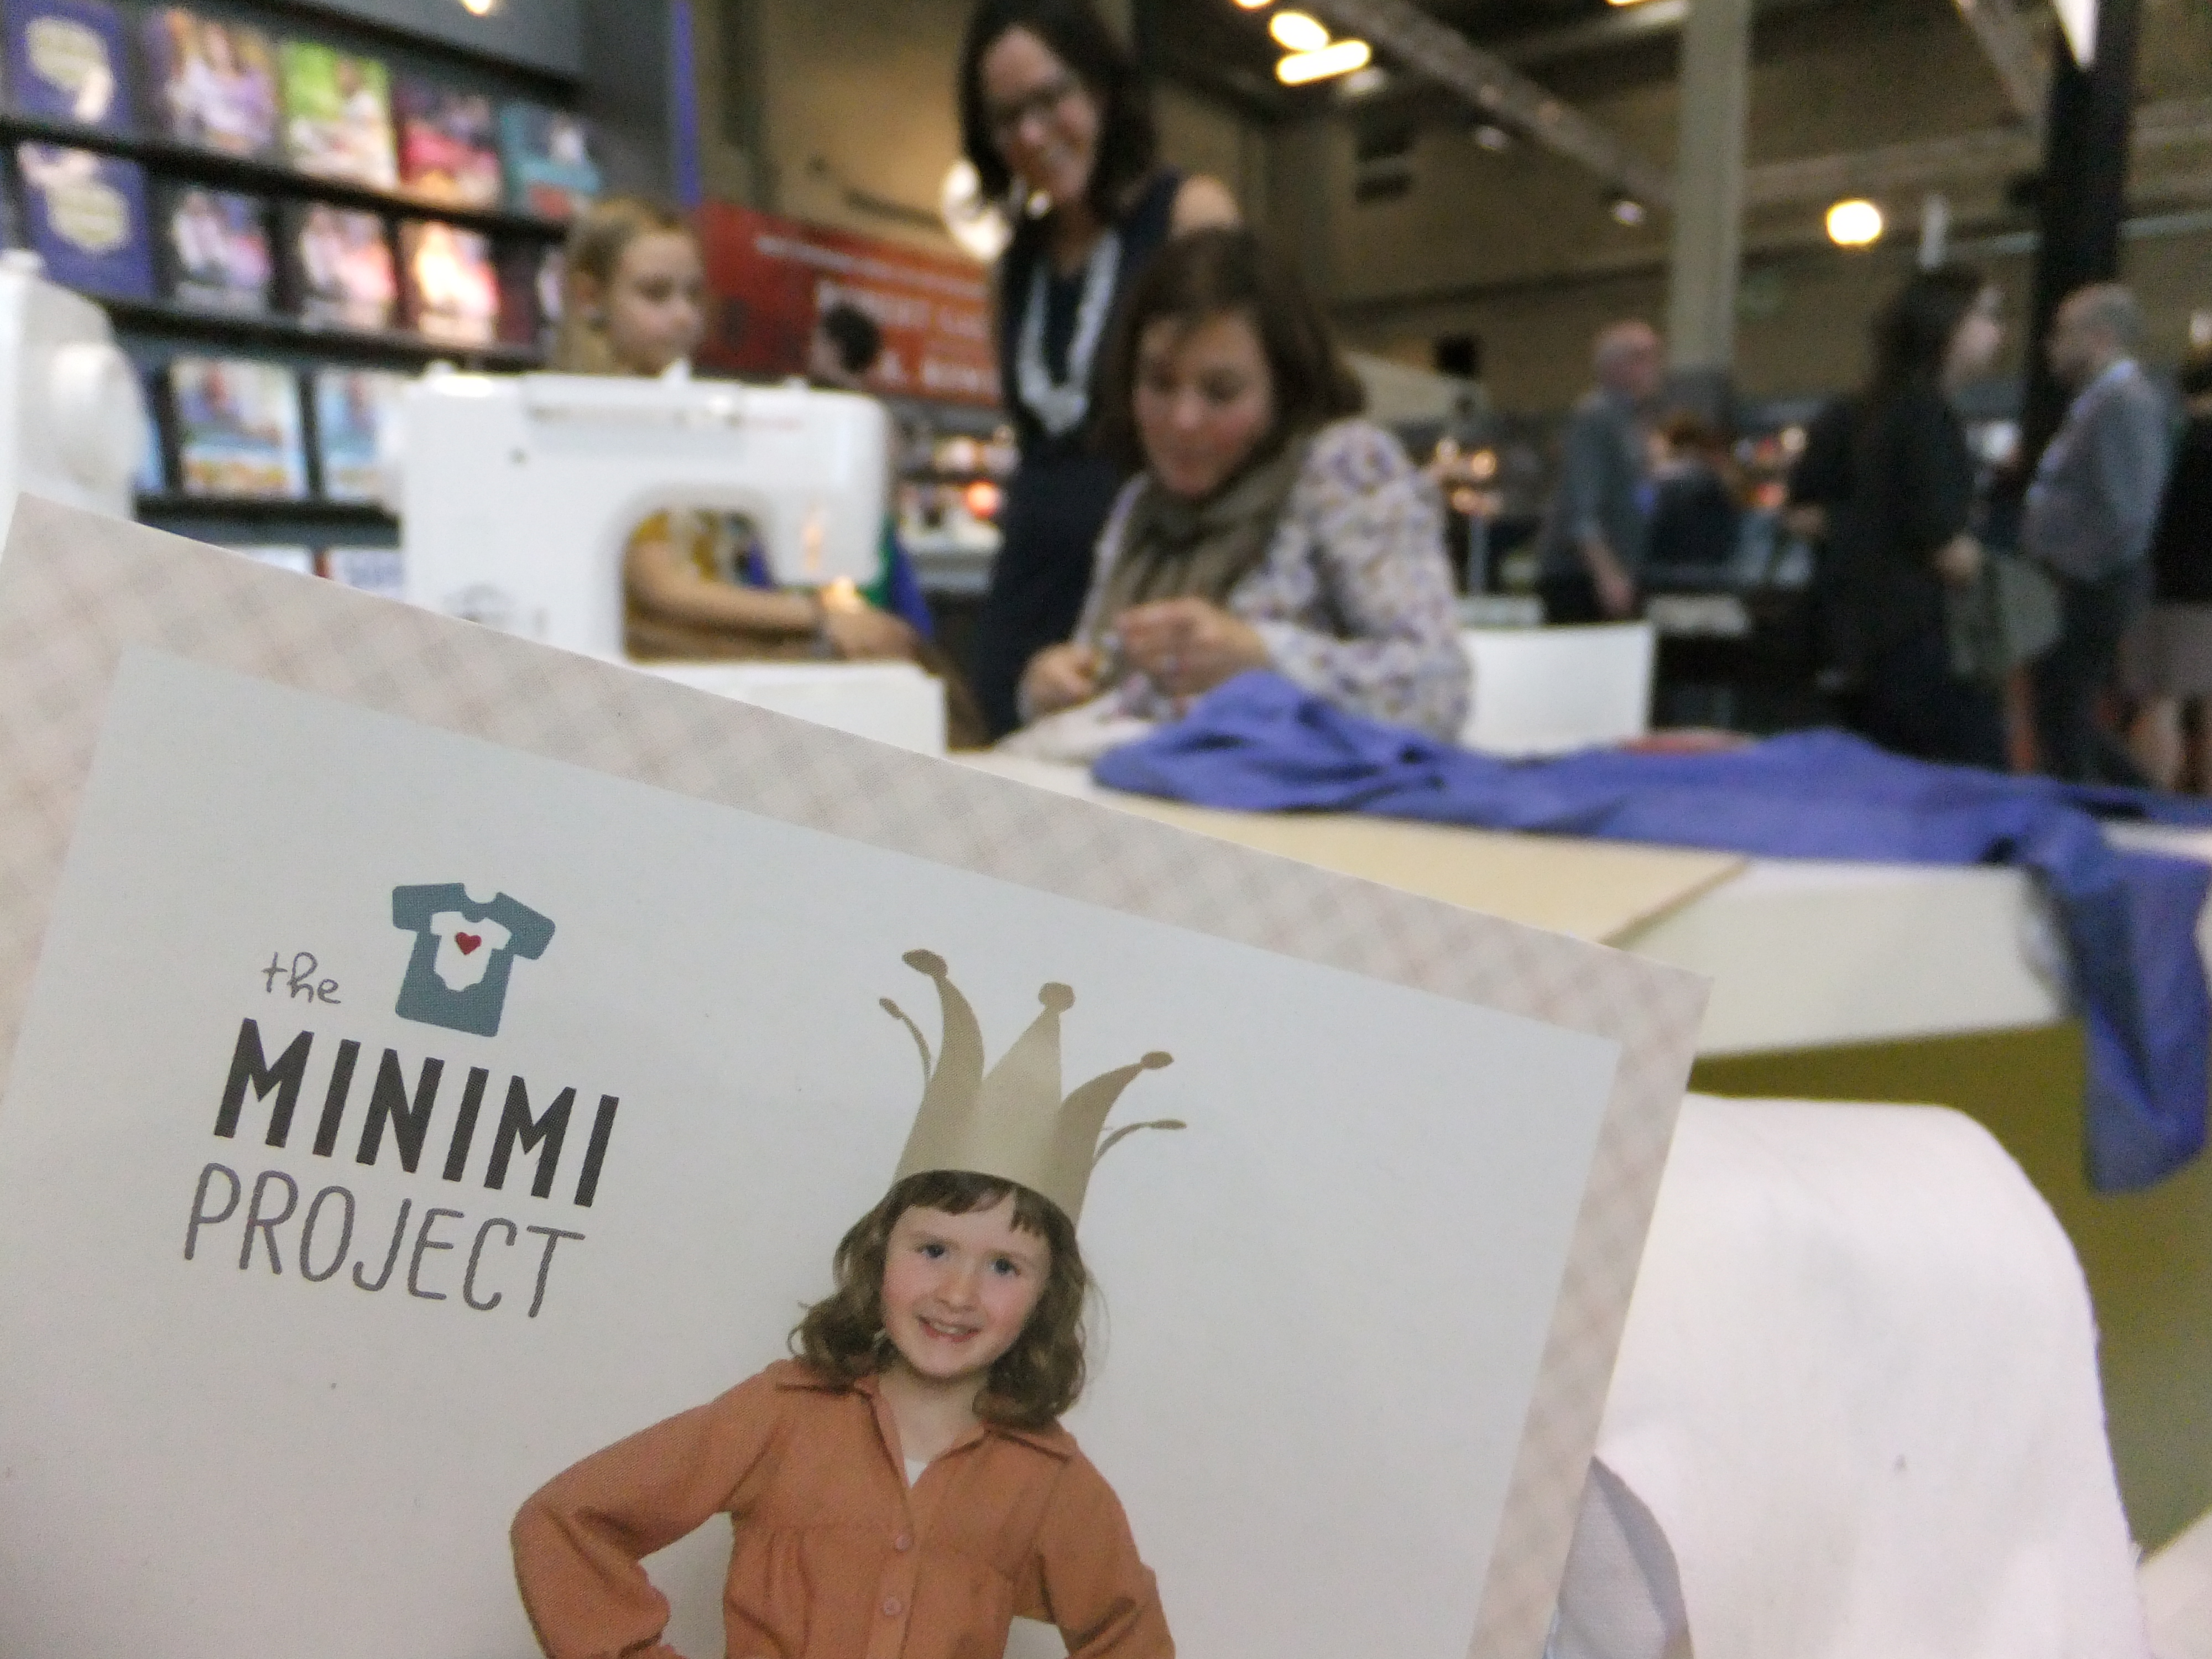 The Minimi Project sewing book and workshop